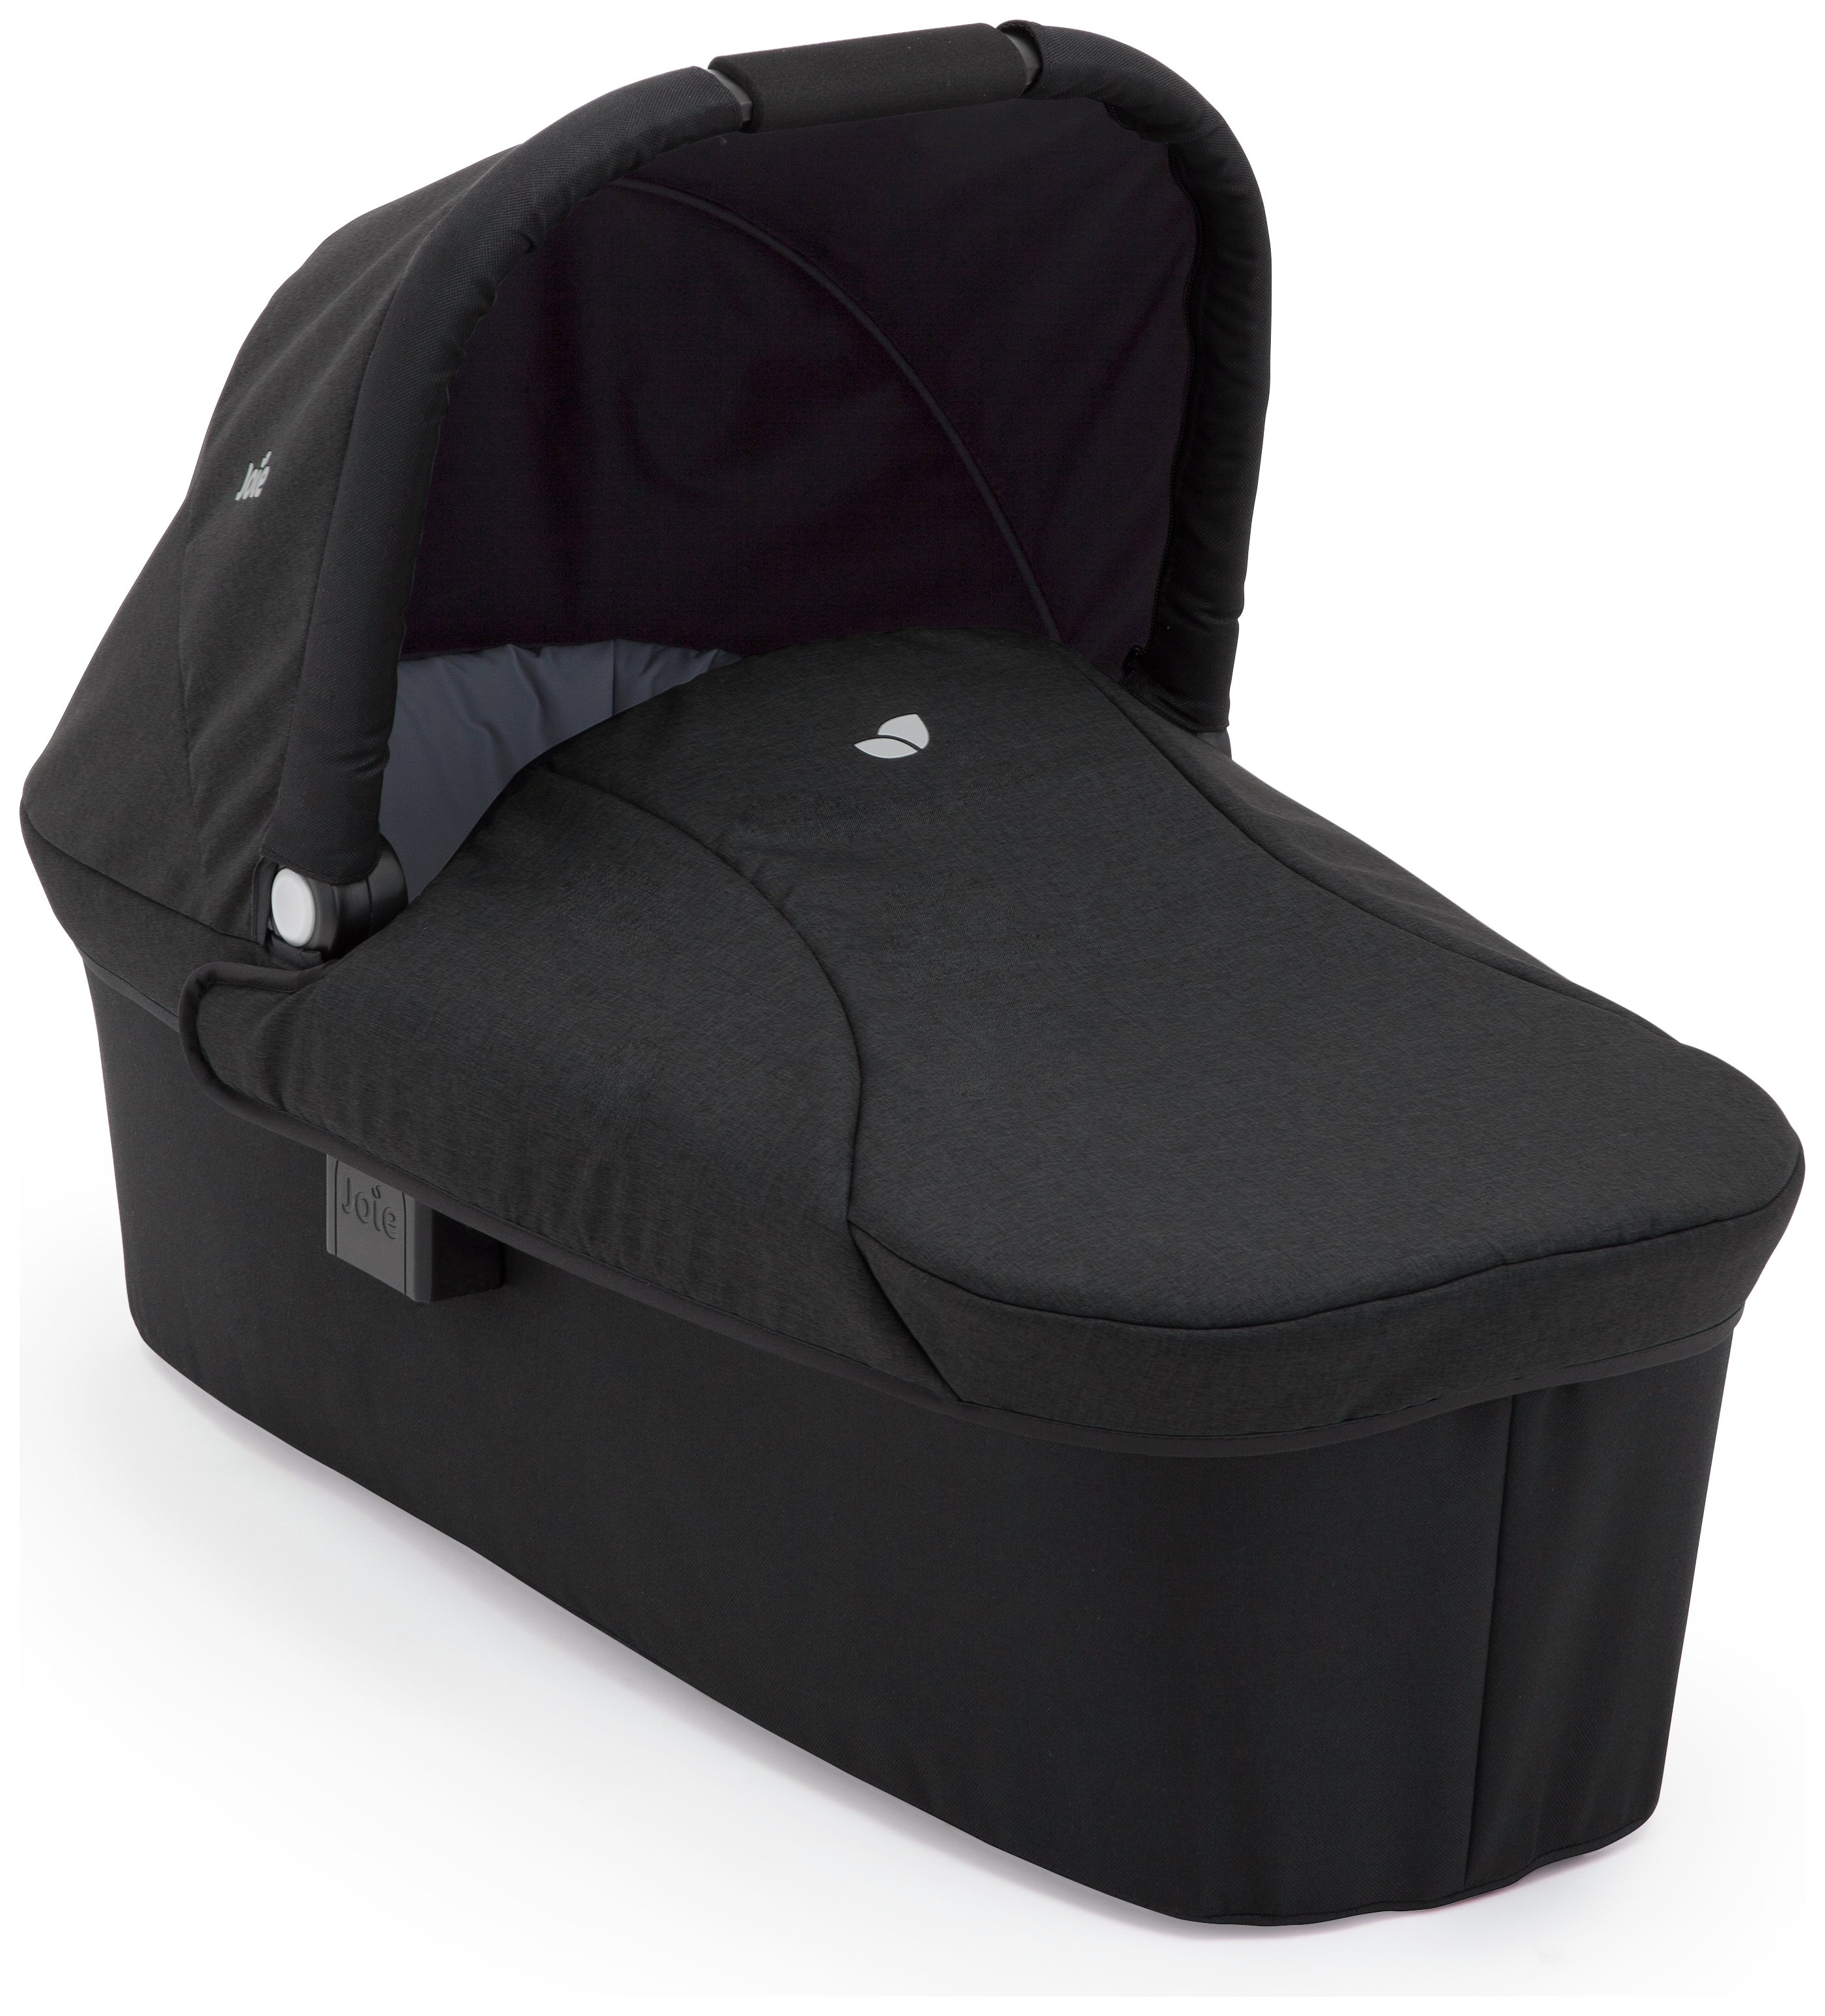 Image of Joie - Litetrax - Carrycot - Night Sky